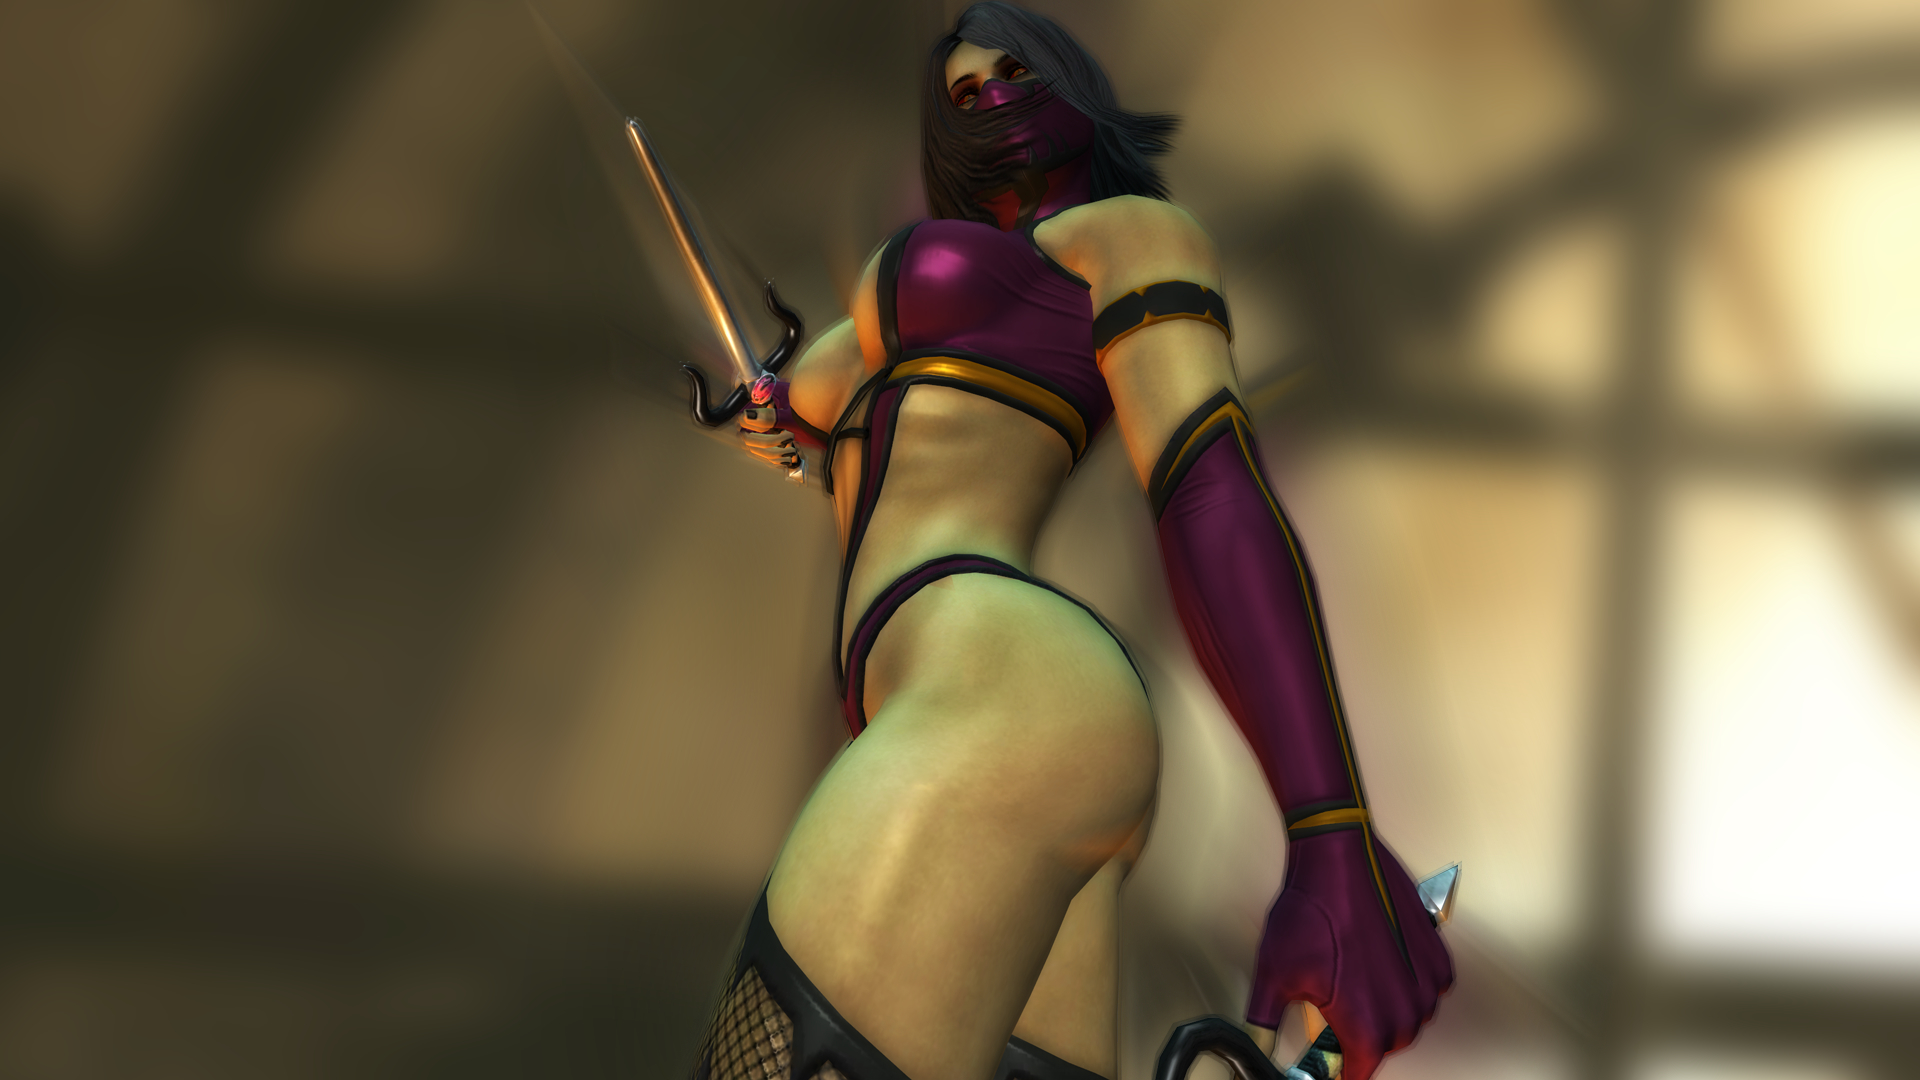 mortal kombat Mileena low-angle HD Wallpaper